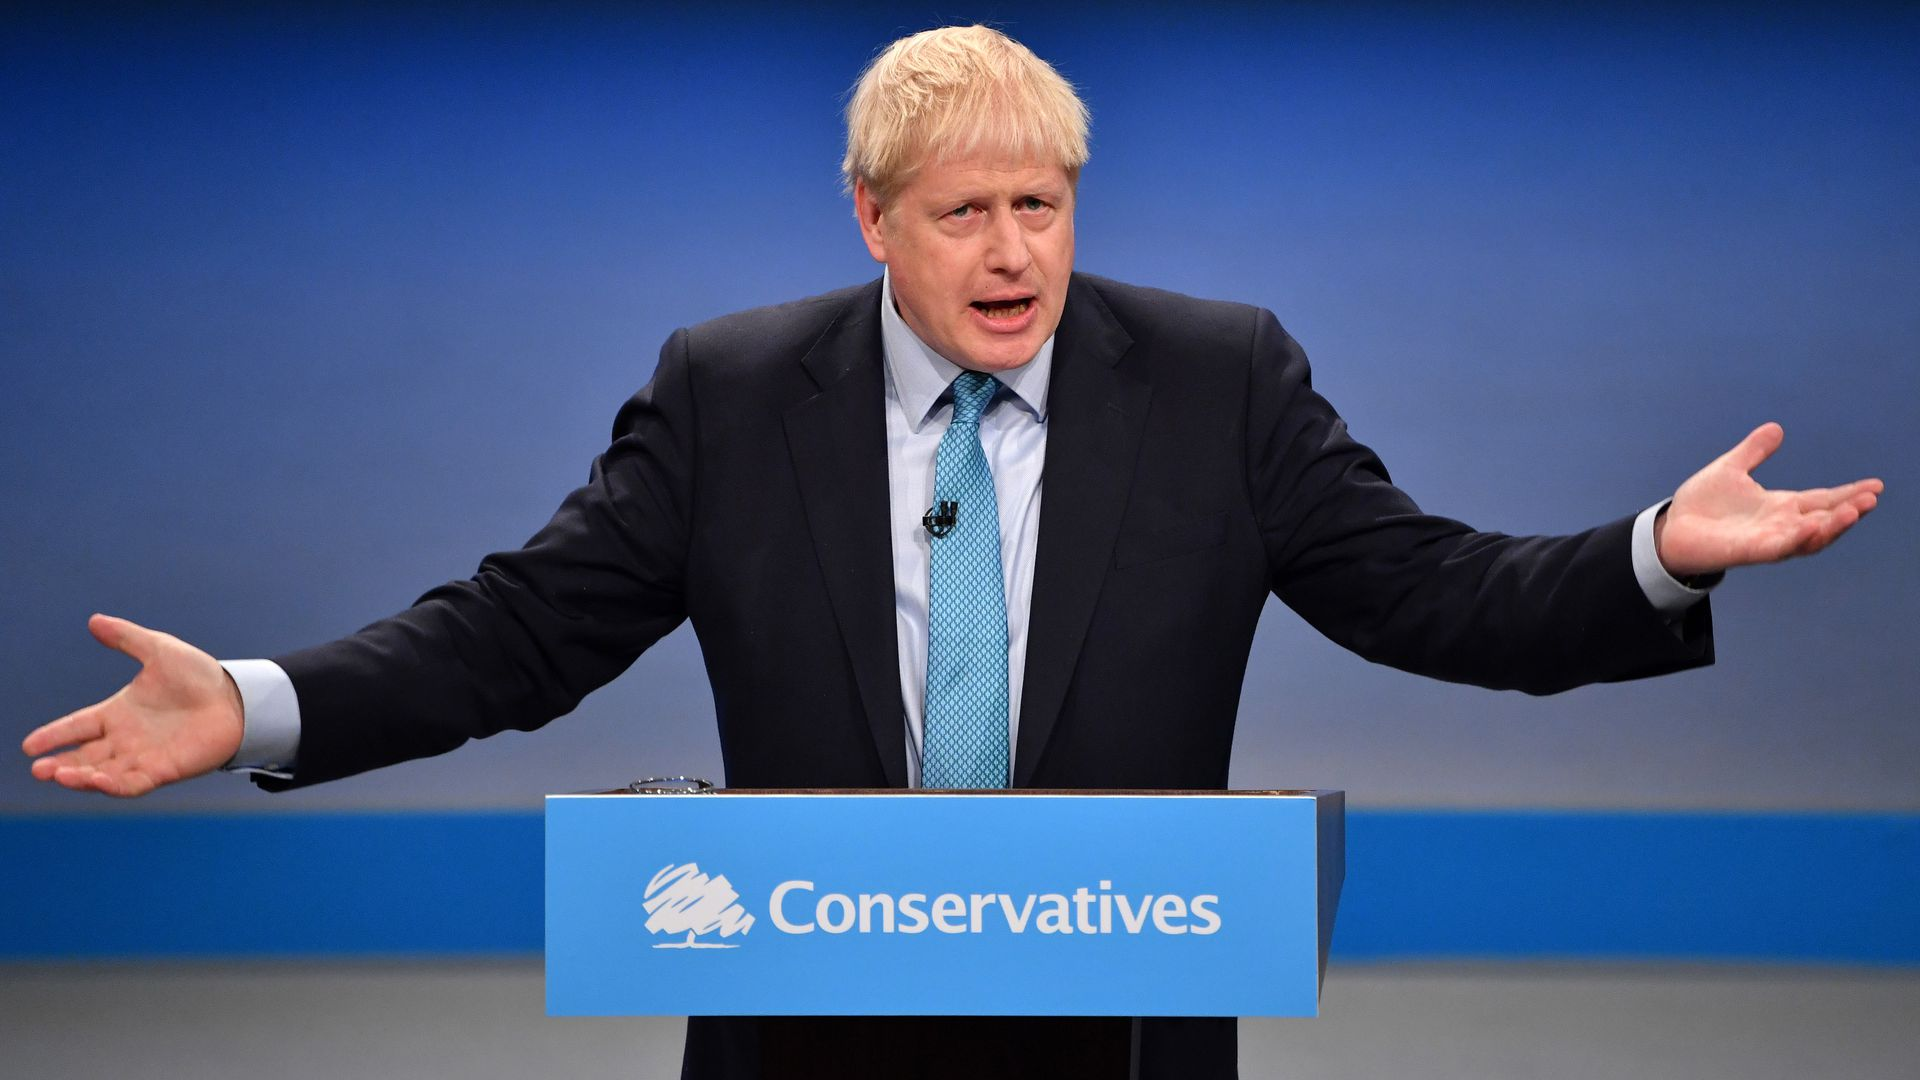 Britain's Prime Minister Boris Johnson delivers his keynote speechat the annual Conservative Party conference in Manchester, north-west England on October 2